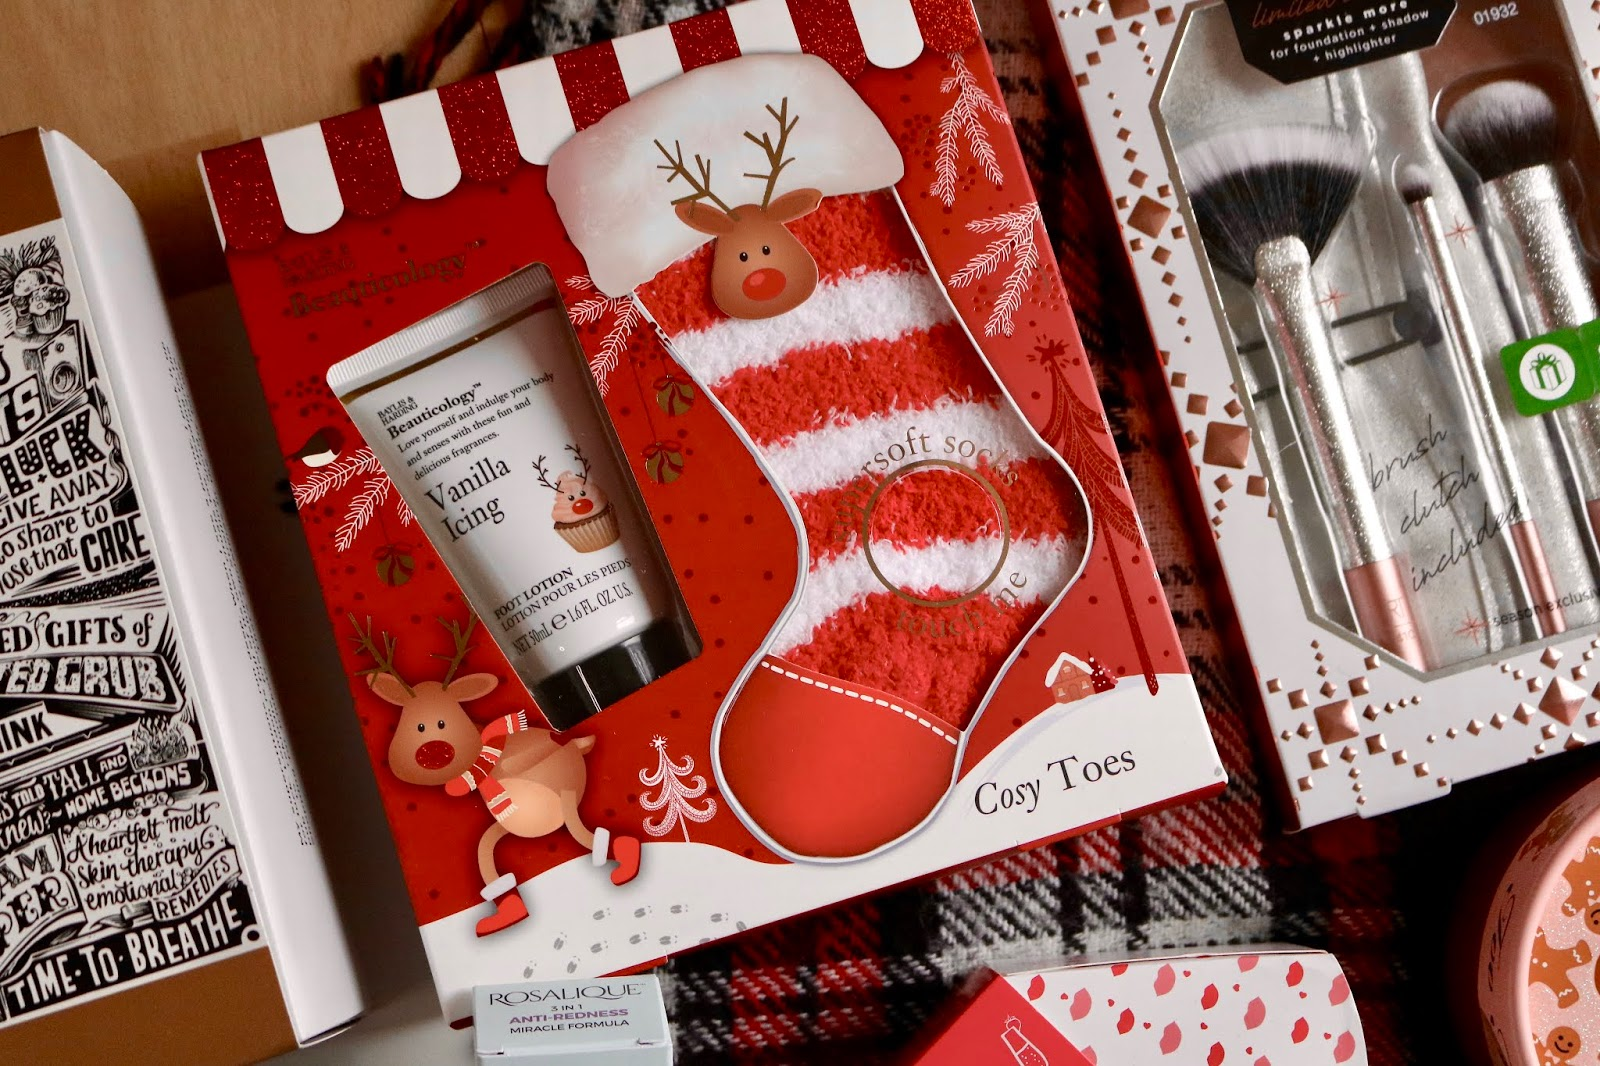 BAYLIS & HARDING BEAUTICOLOGY RUDOLPH FESTIVE TREATS FOR FEET SET